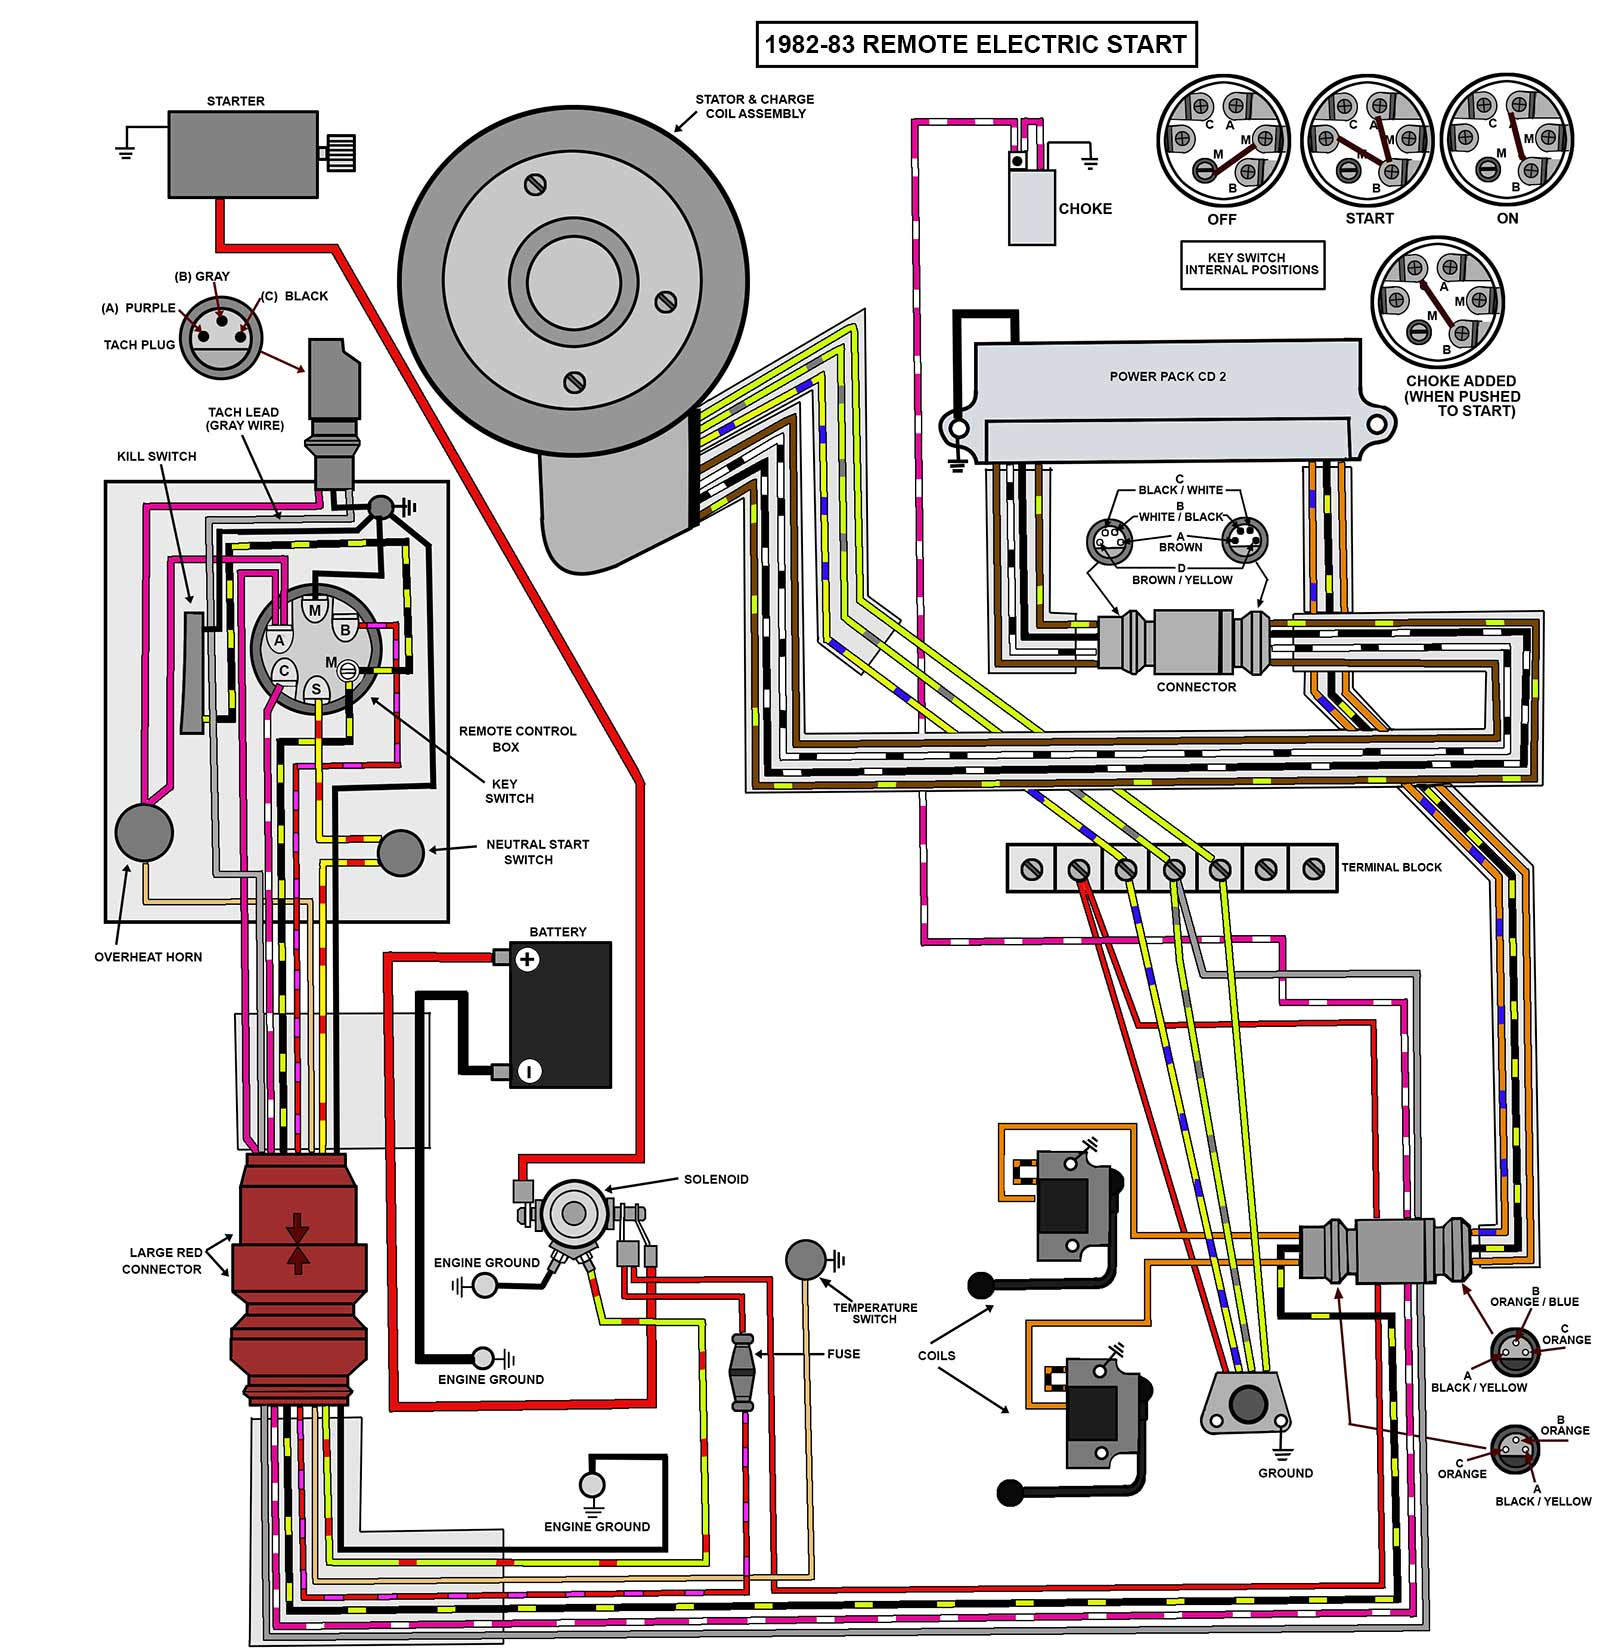 25_35_82 83_elec remote hp wiring diagram wiring harness diagram \u2022 wiring diagrams j mercury outboard wiring harness diagram at readyjetset.co